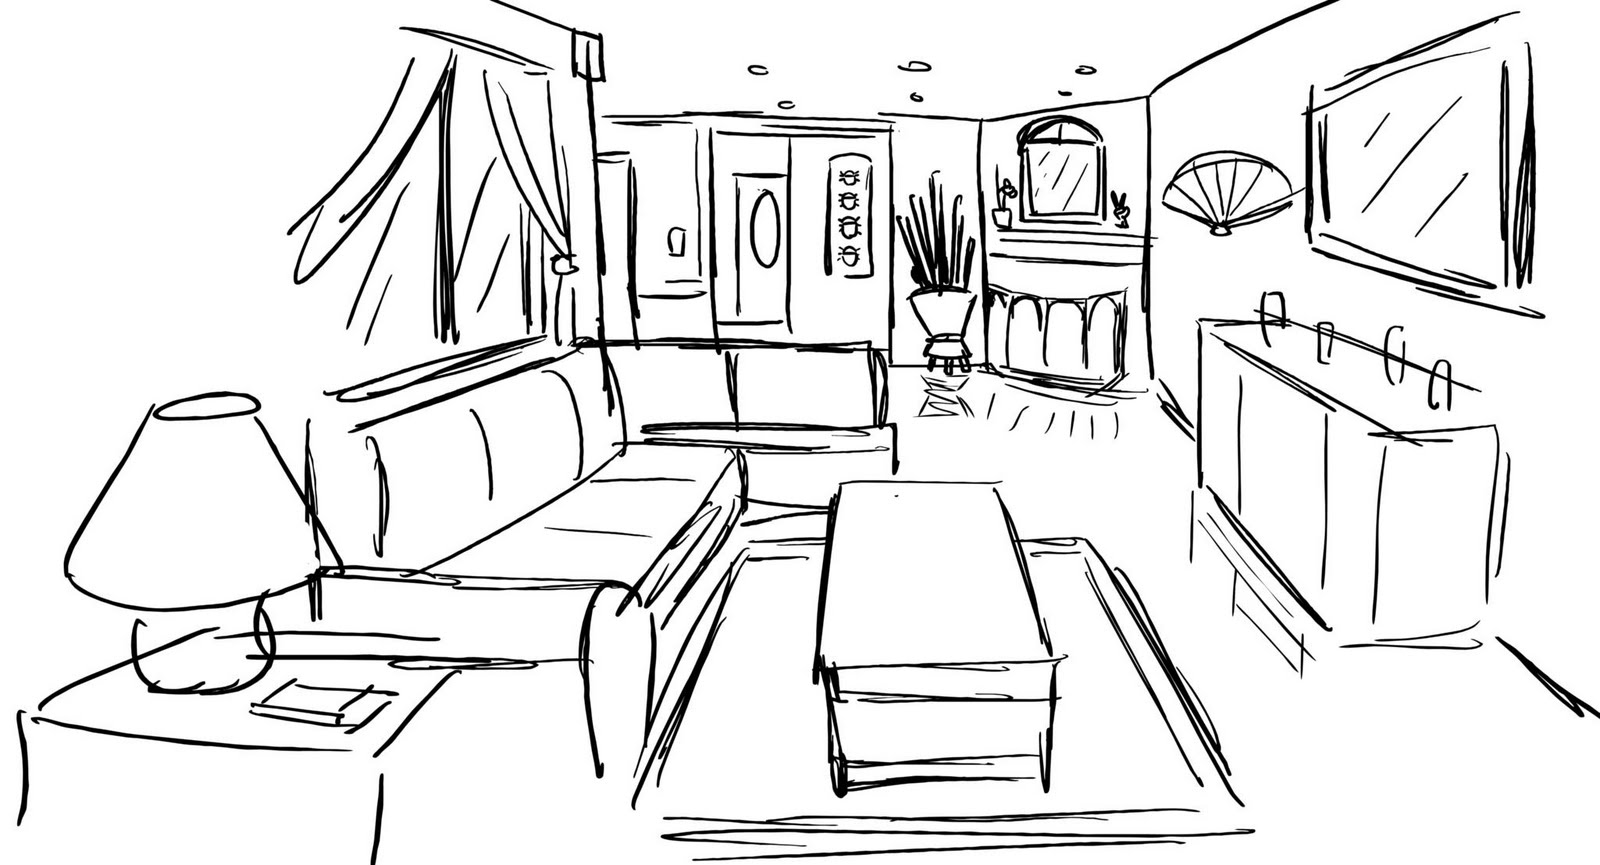 1000 Images About Perspective Rooms Buildings On: room sketches interior design